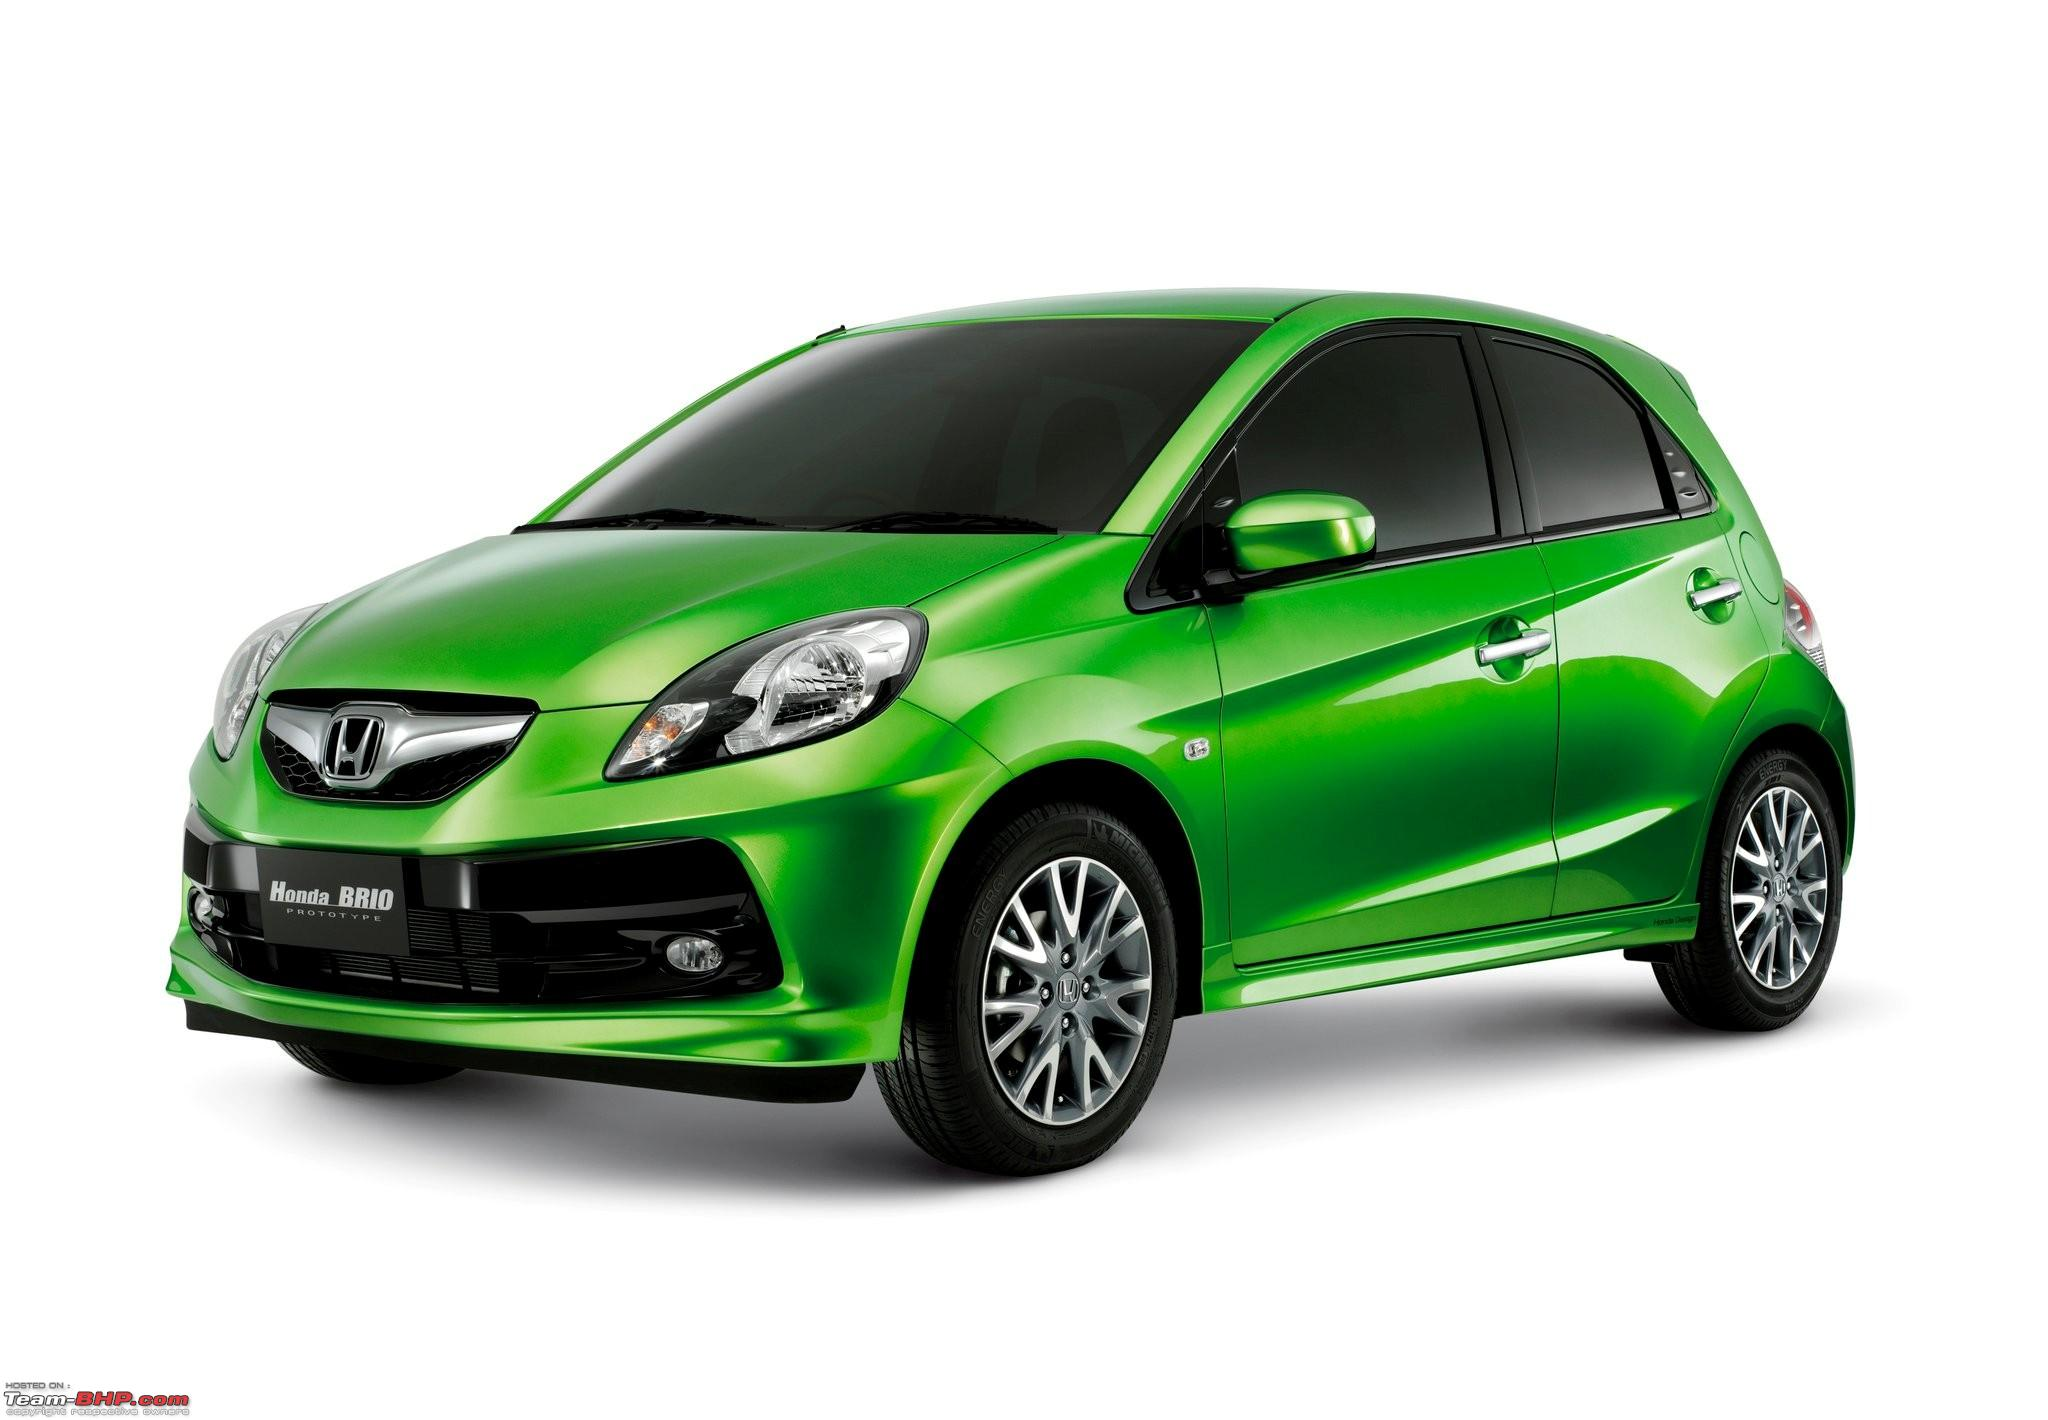 Honda Brio Small Car For India Desktop Backgrounds